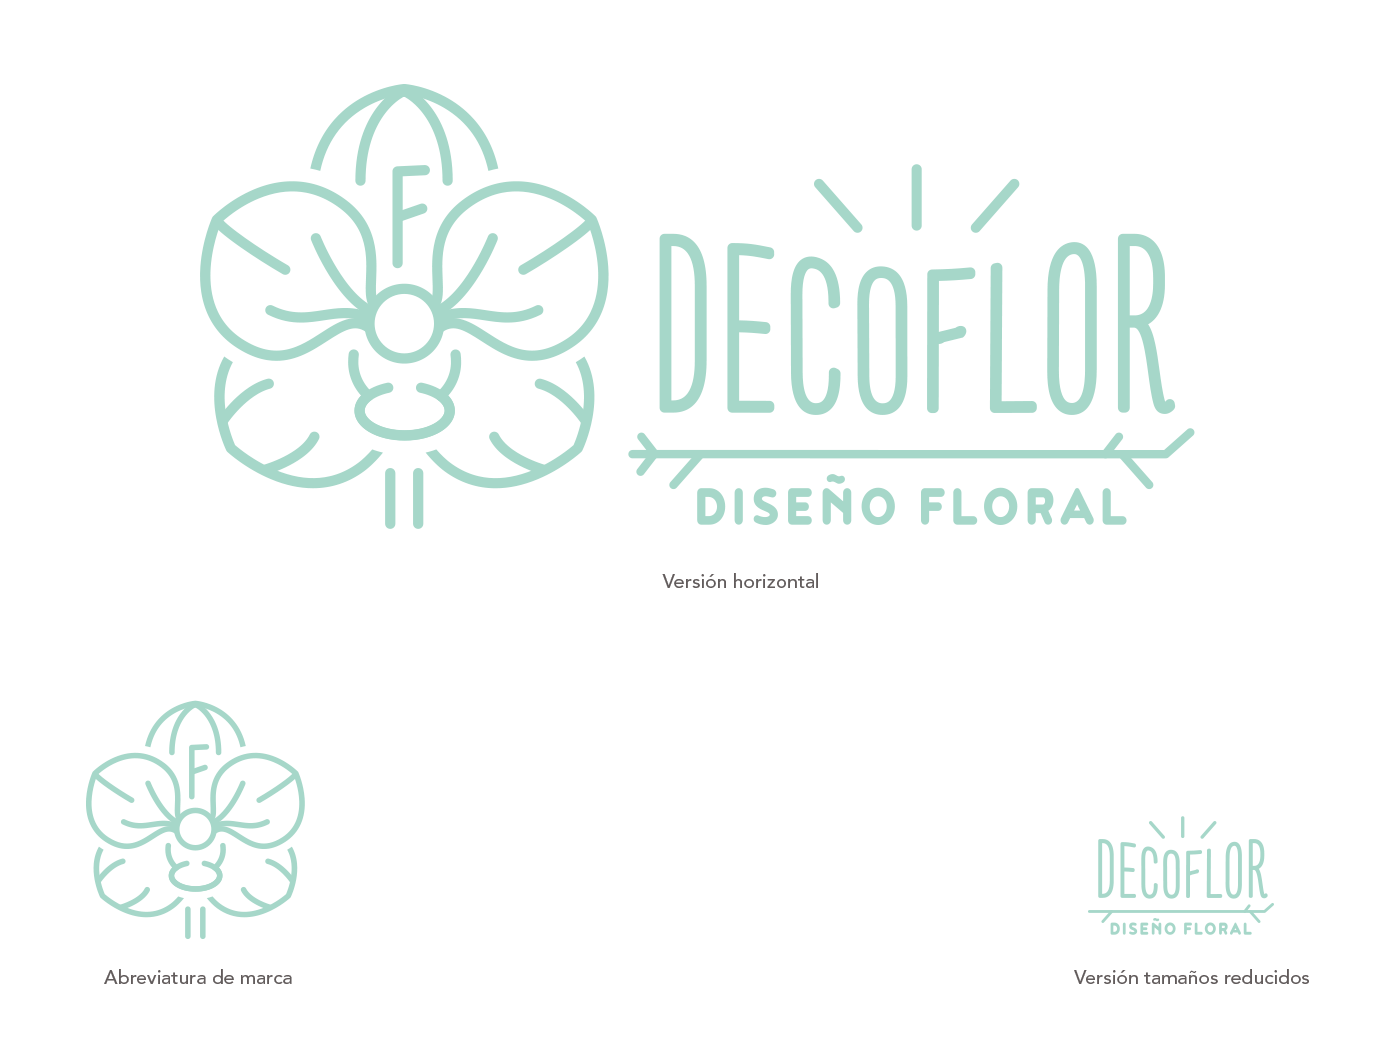 58126decoflor_versiones_marca